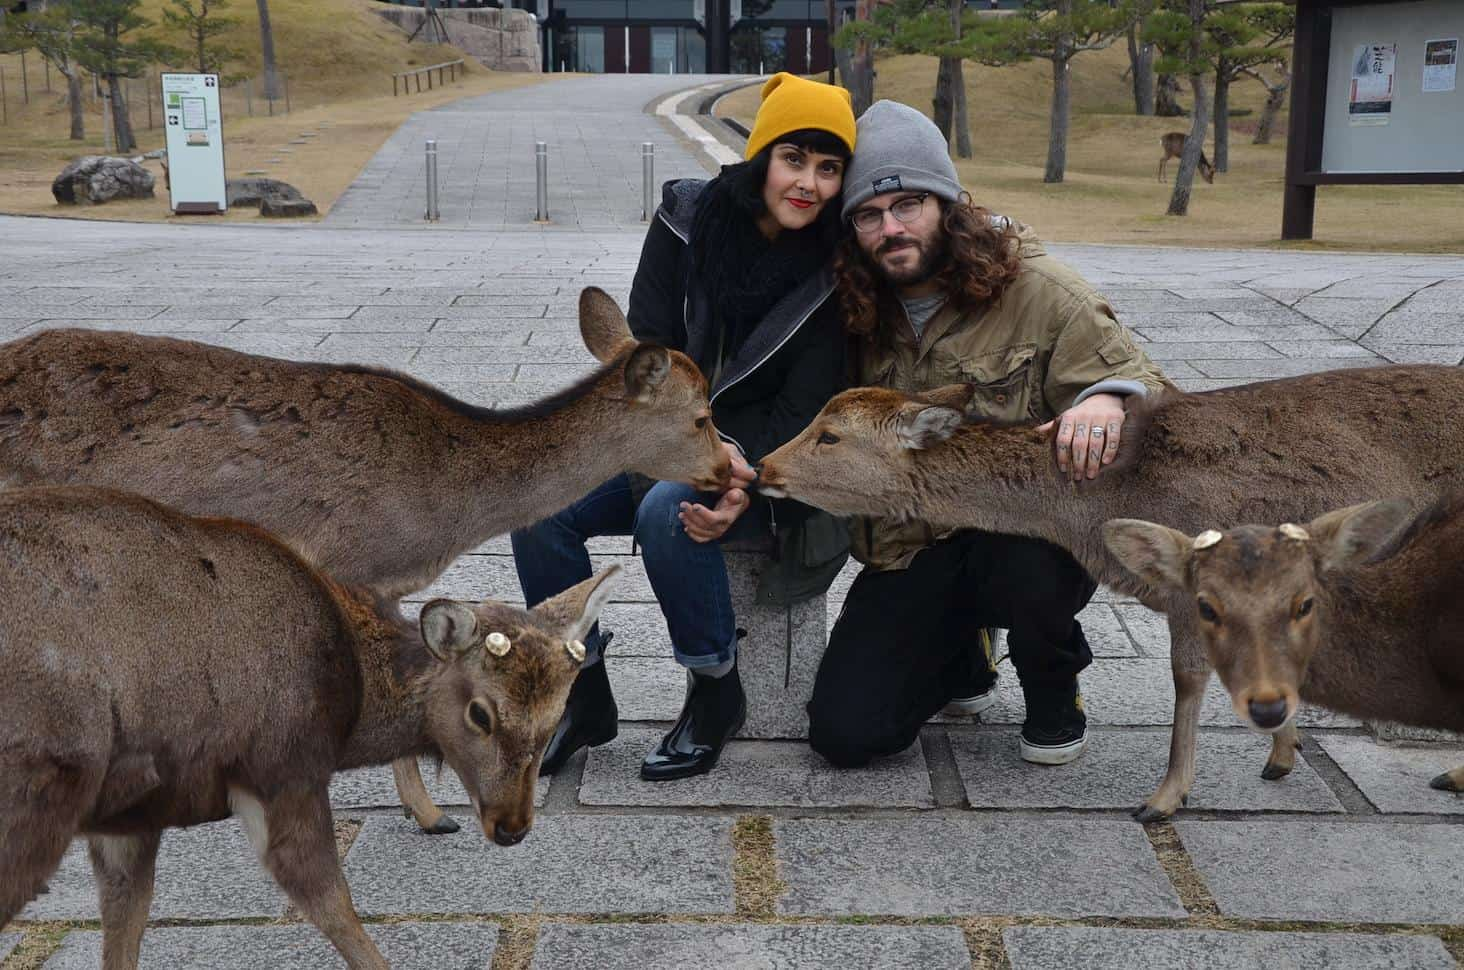 Us in Nara, Japan with the beautiful and friendly Sika Deer (Photo by Mindful Wanderlust)